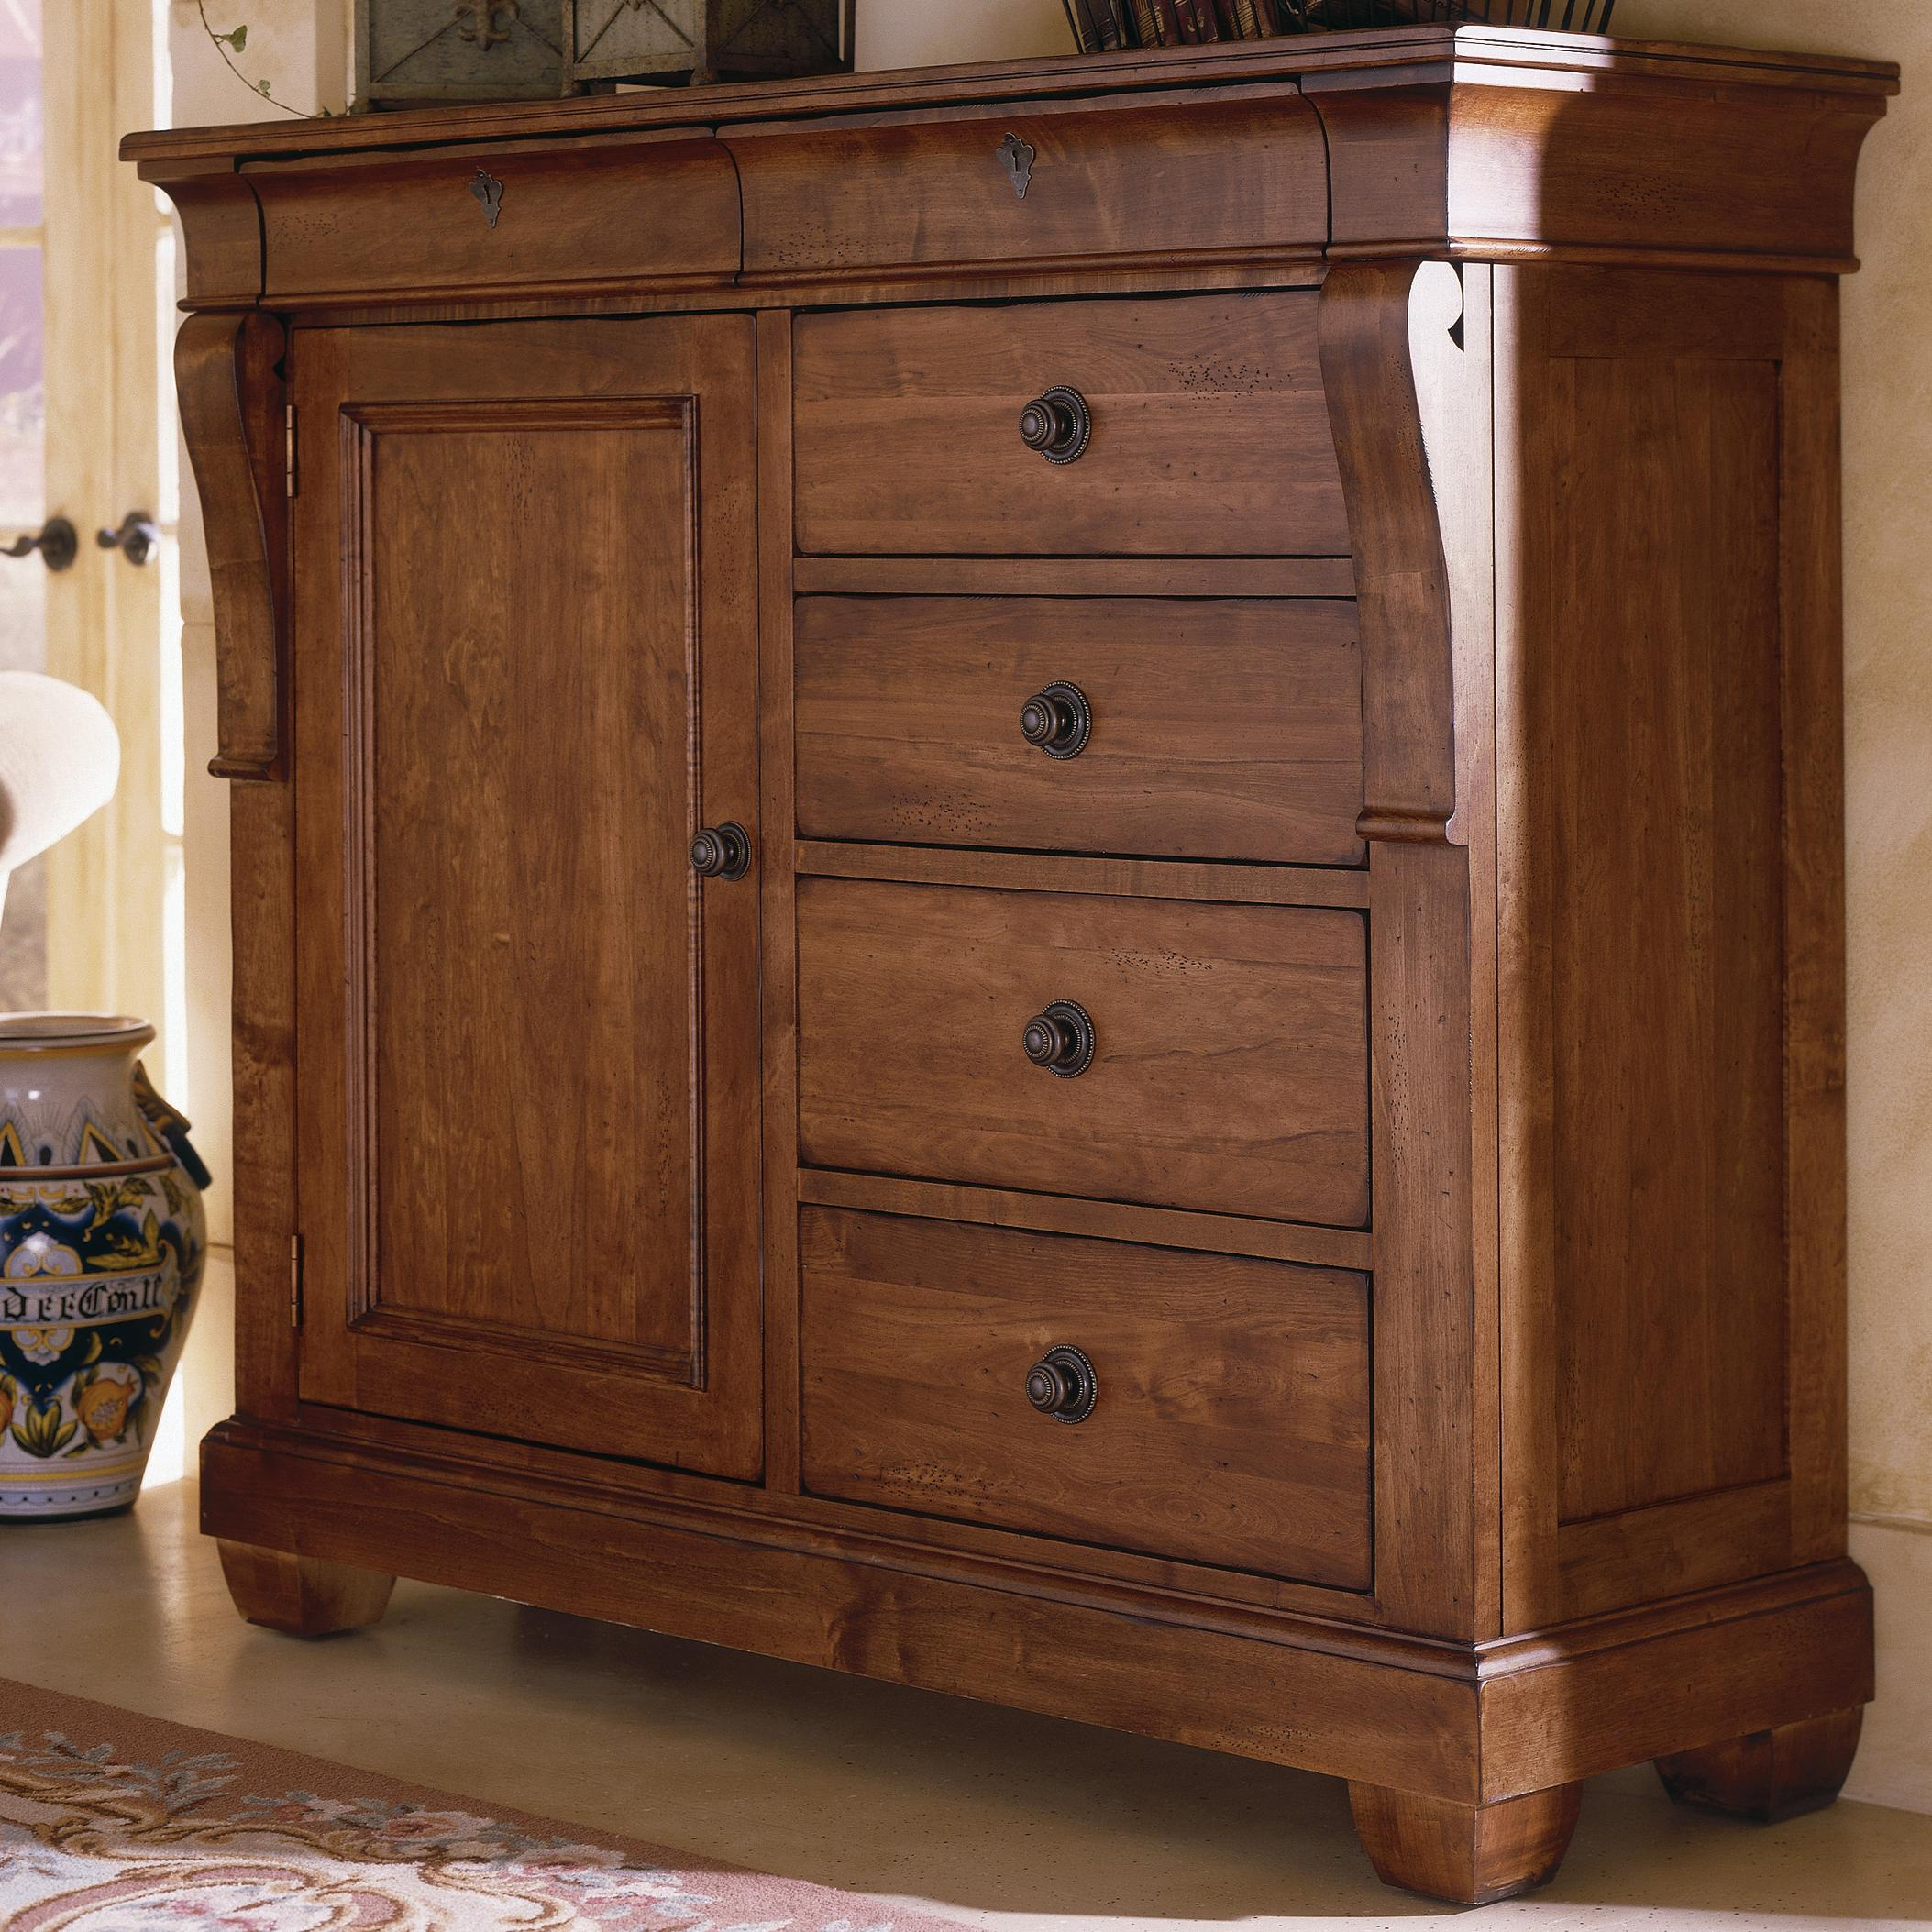 Merveilleux Kincaid Furniture Tuscano Door Chest   Item Number: 96162